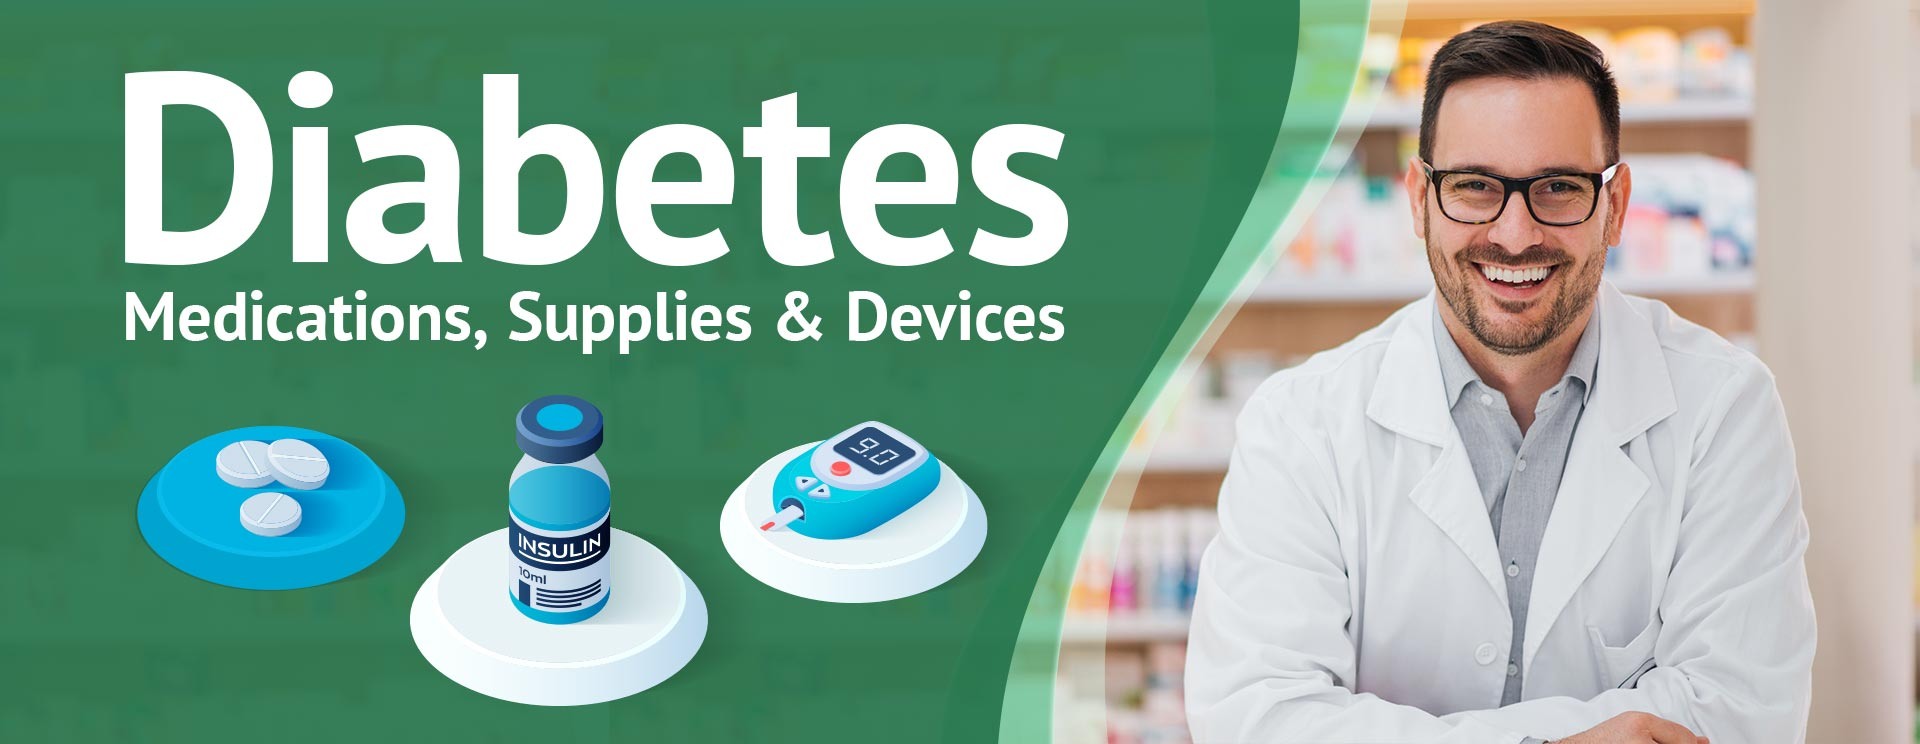 Diabetes Medications, Supplies & Devices